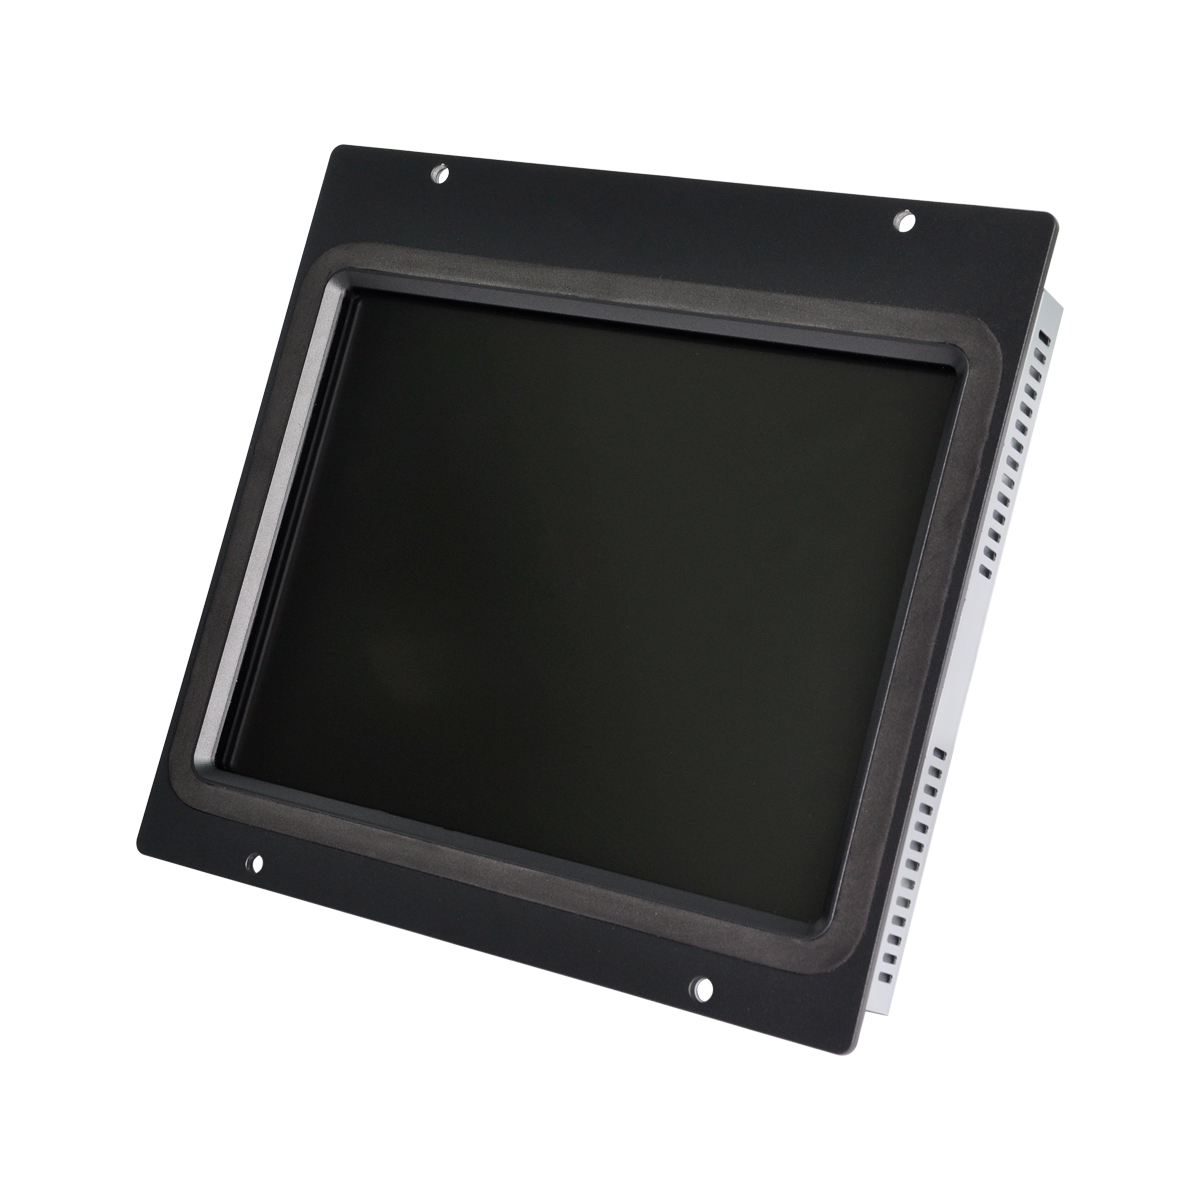 12.1 Inch Industrial High Brightness Sun readable Touch Monitor